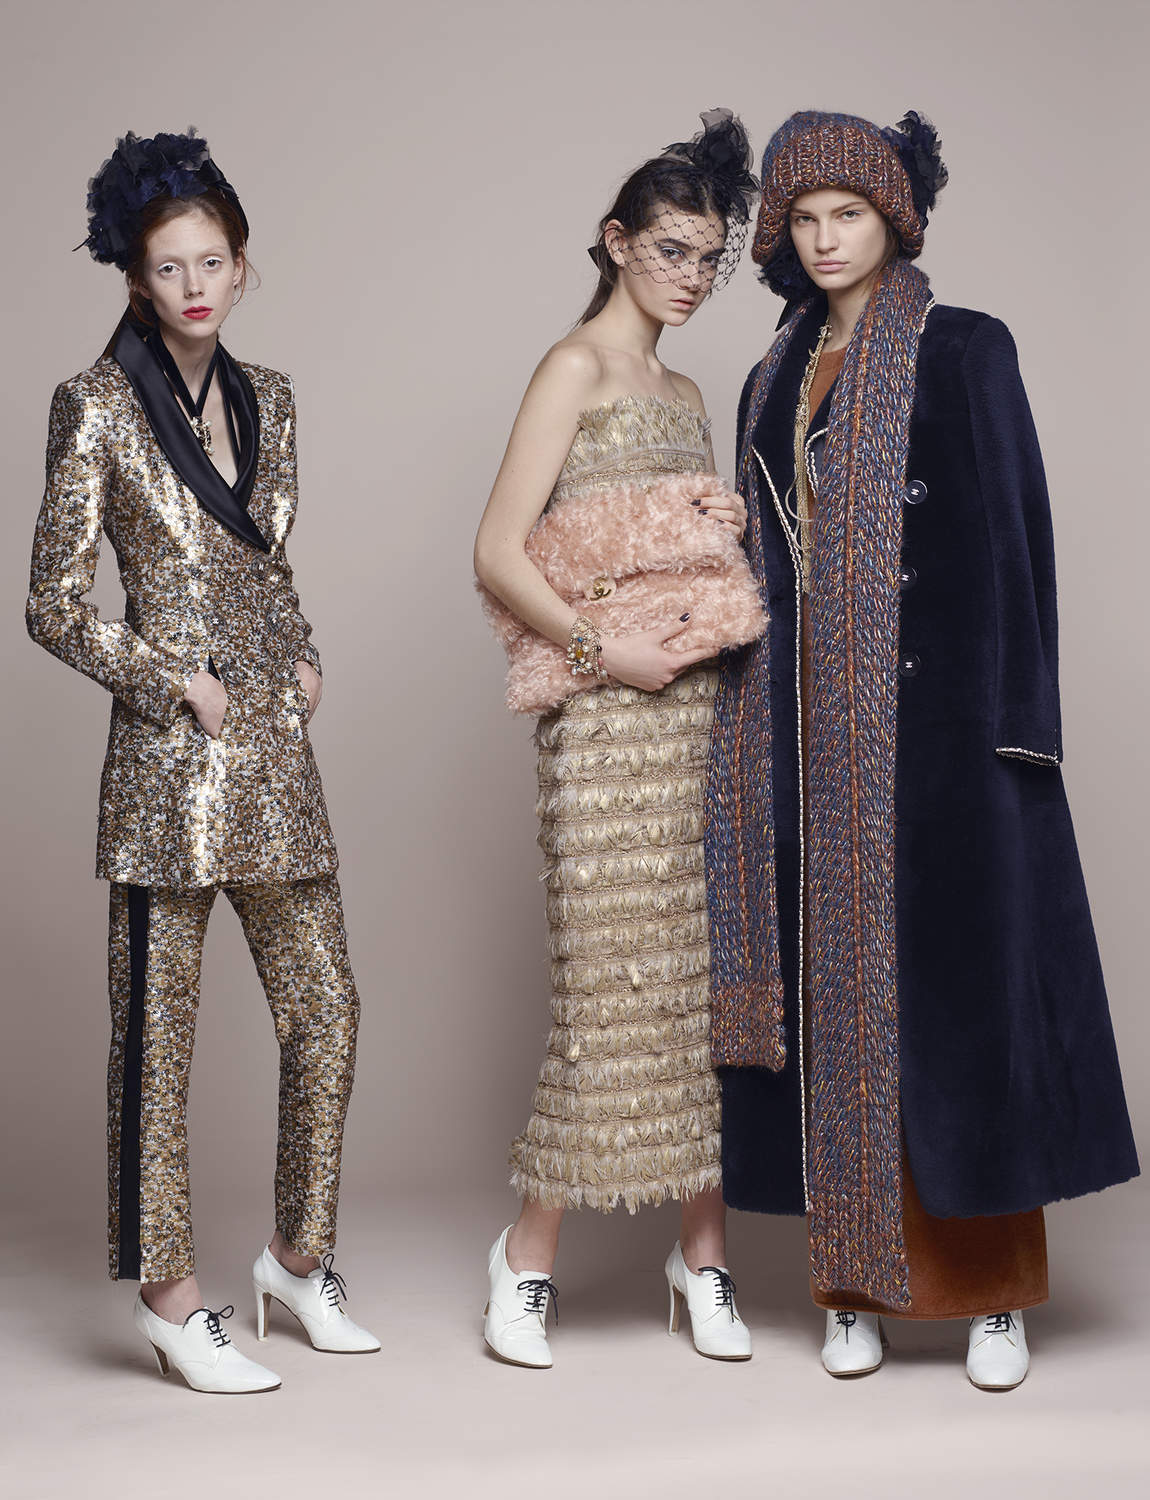 chanel-metiers-dart-pre-fall-2017-campaign-the-impression-06